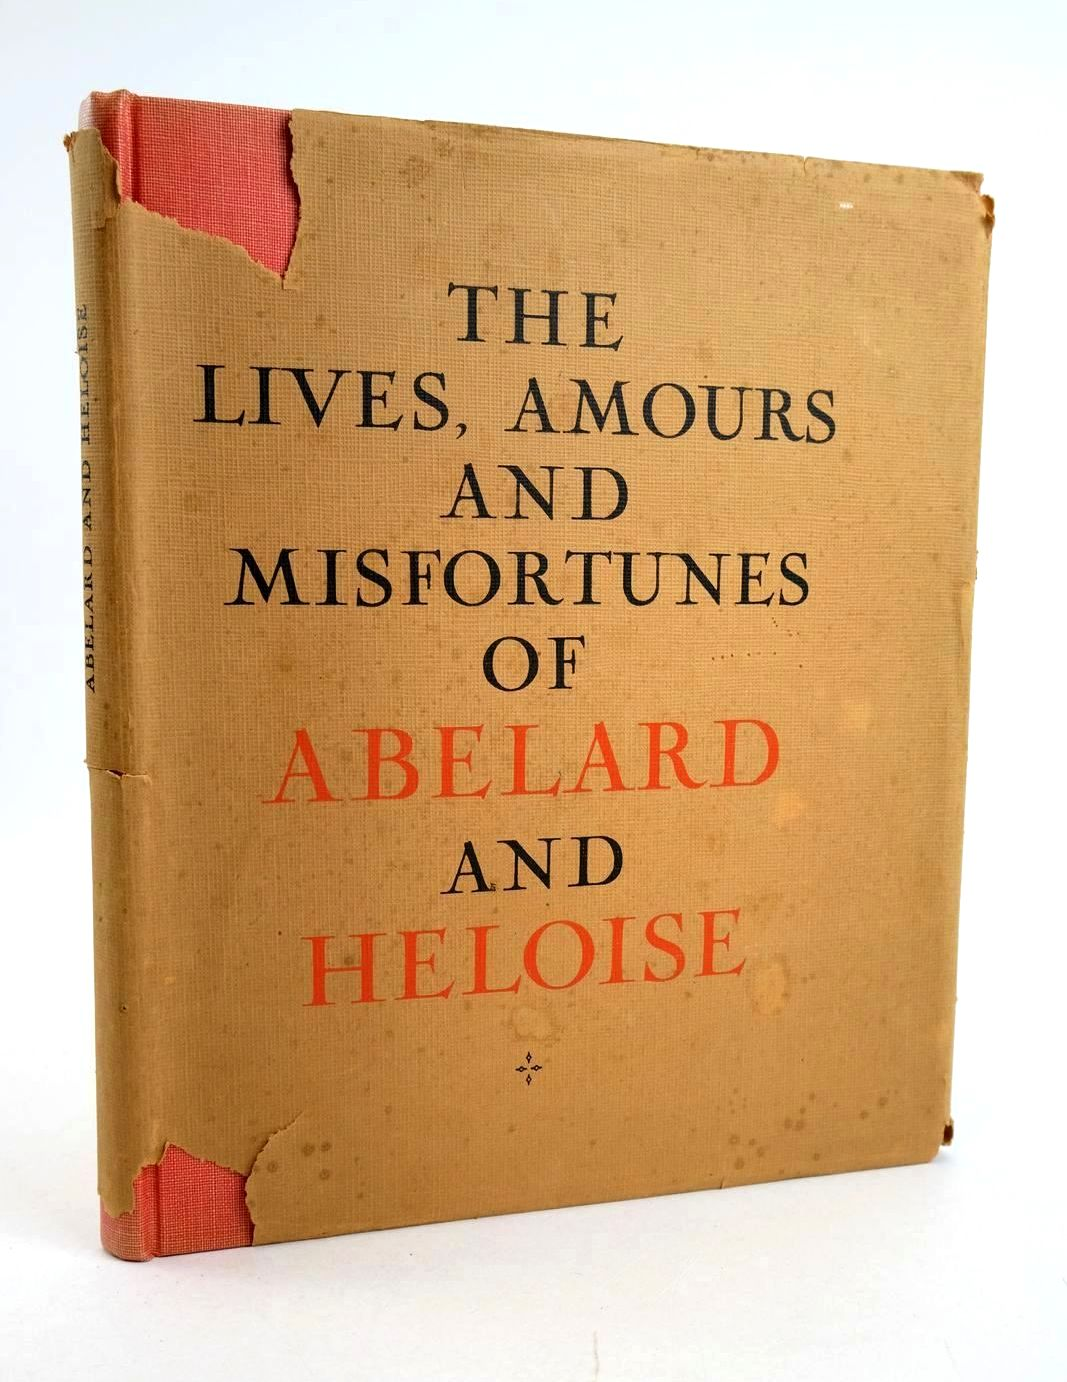 Photo of THE LIVES, AMOURS AND MISFORTUNES OF ABELARD AND HELOISE- Stock Number: 1319053